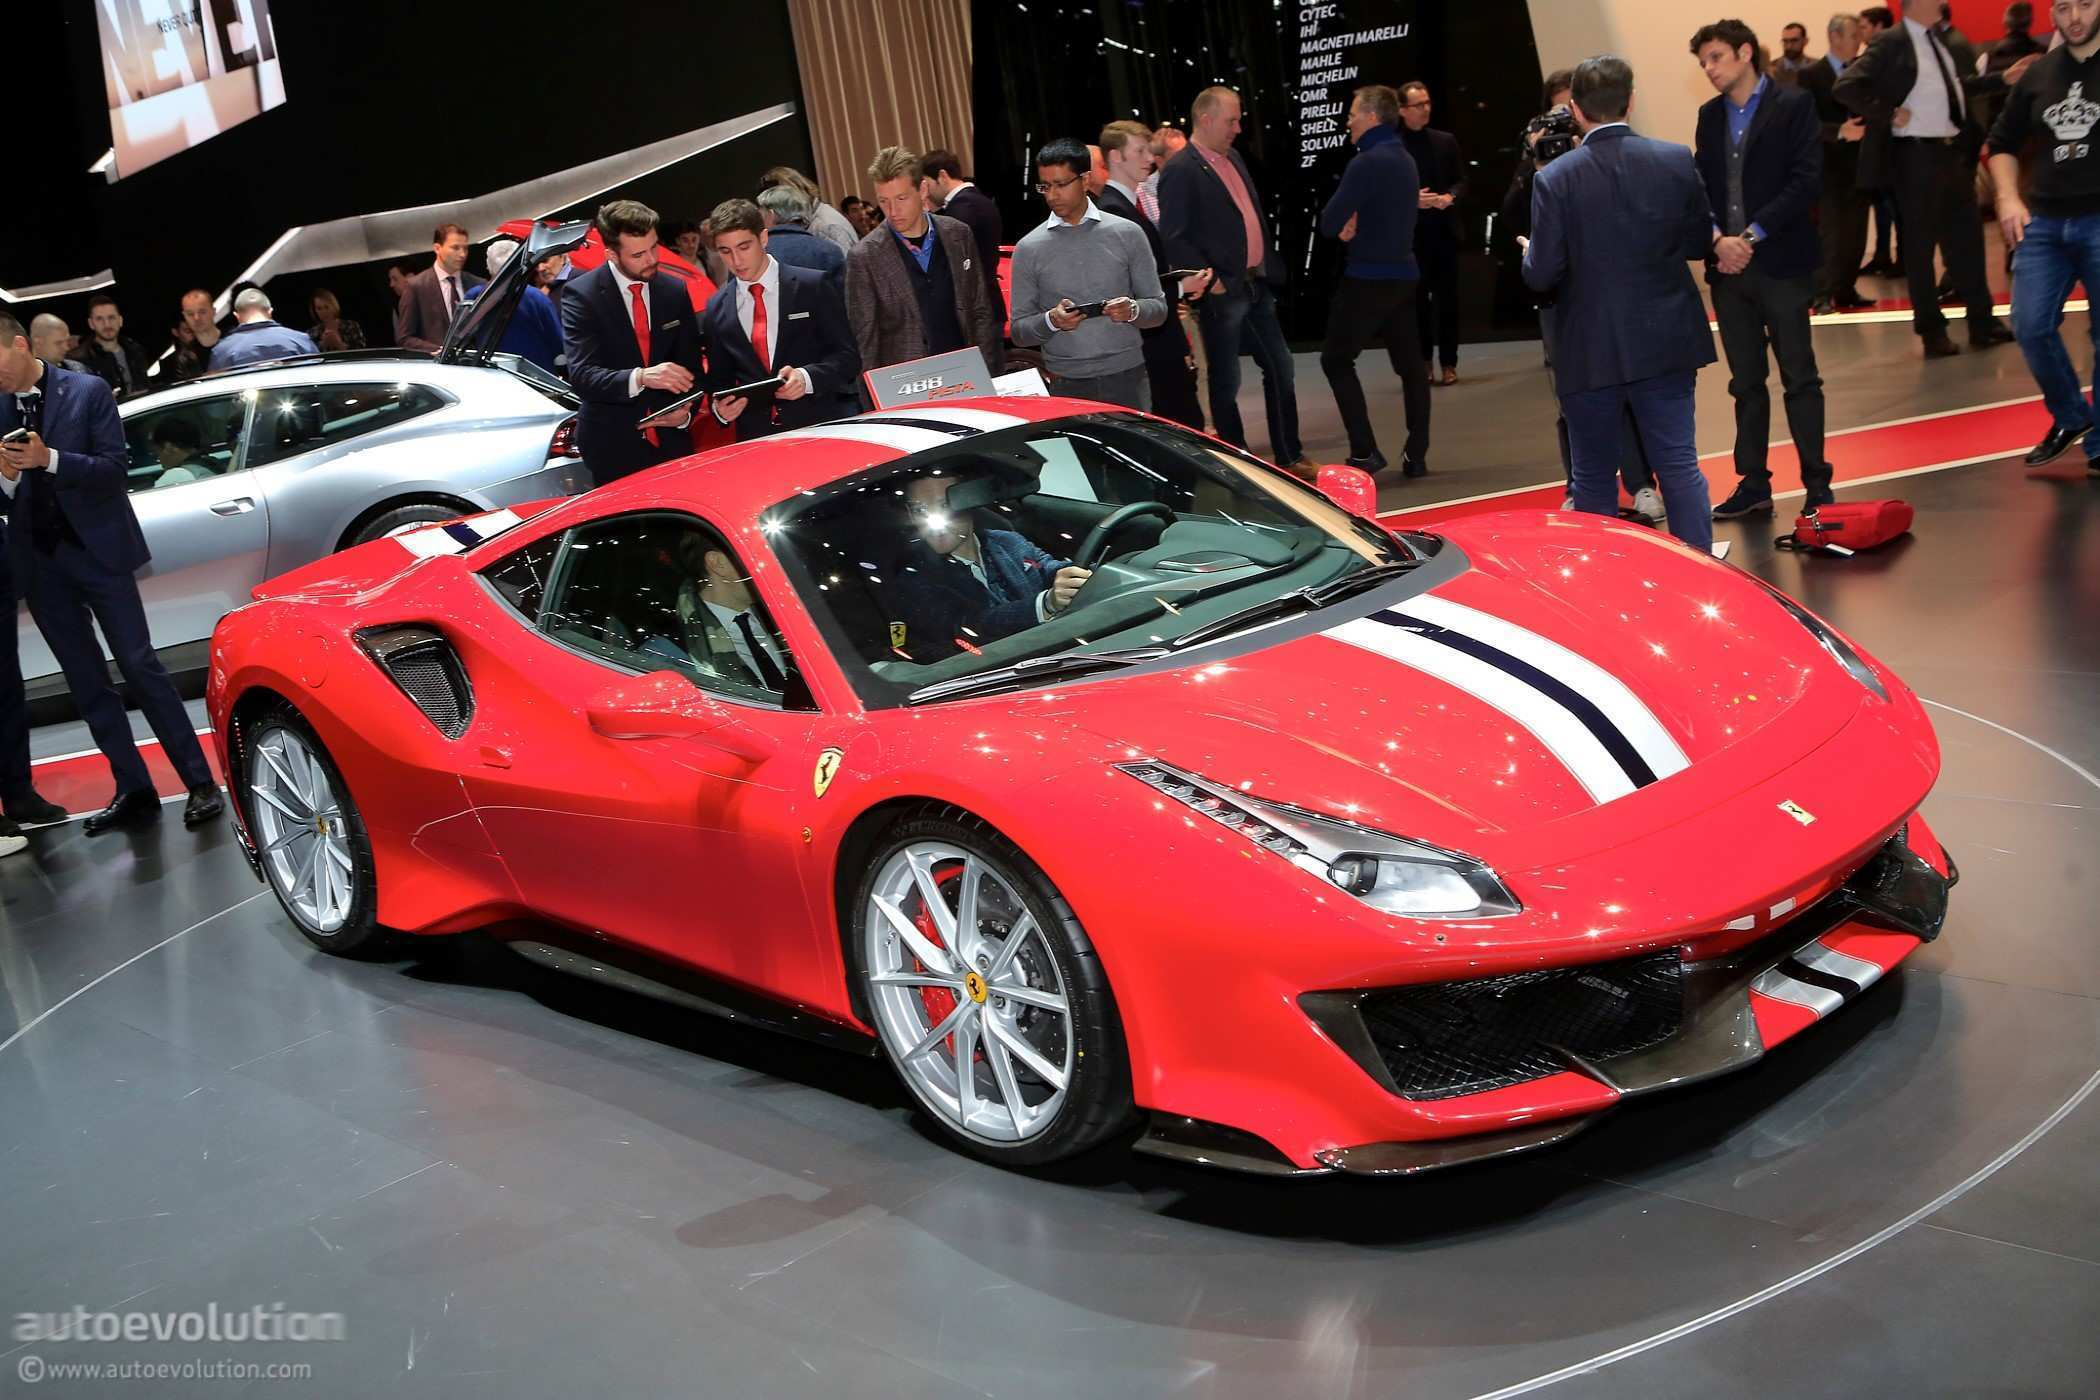 78 The 2019 Ferrari 488 Pista 2 Images with 2019 Ferrari 488 Pista 2